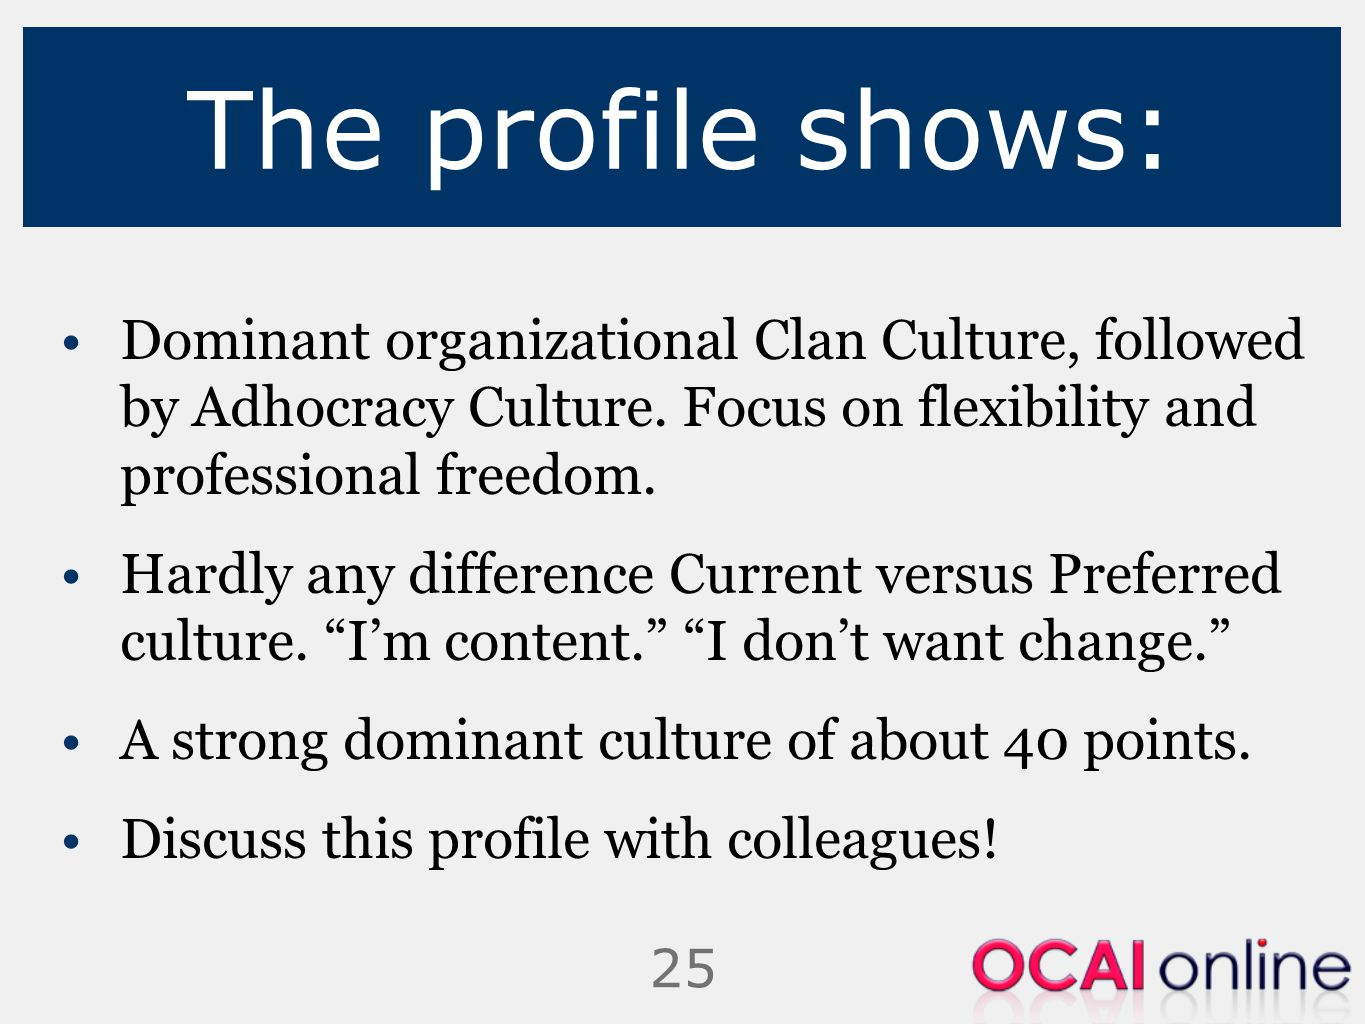 The profile shows: Dominant organizational Clan Culture, followed by Adhocracy Culture. Focus on flexibility and professional freedom.